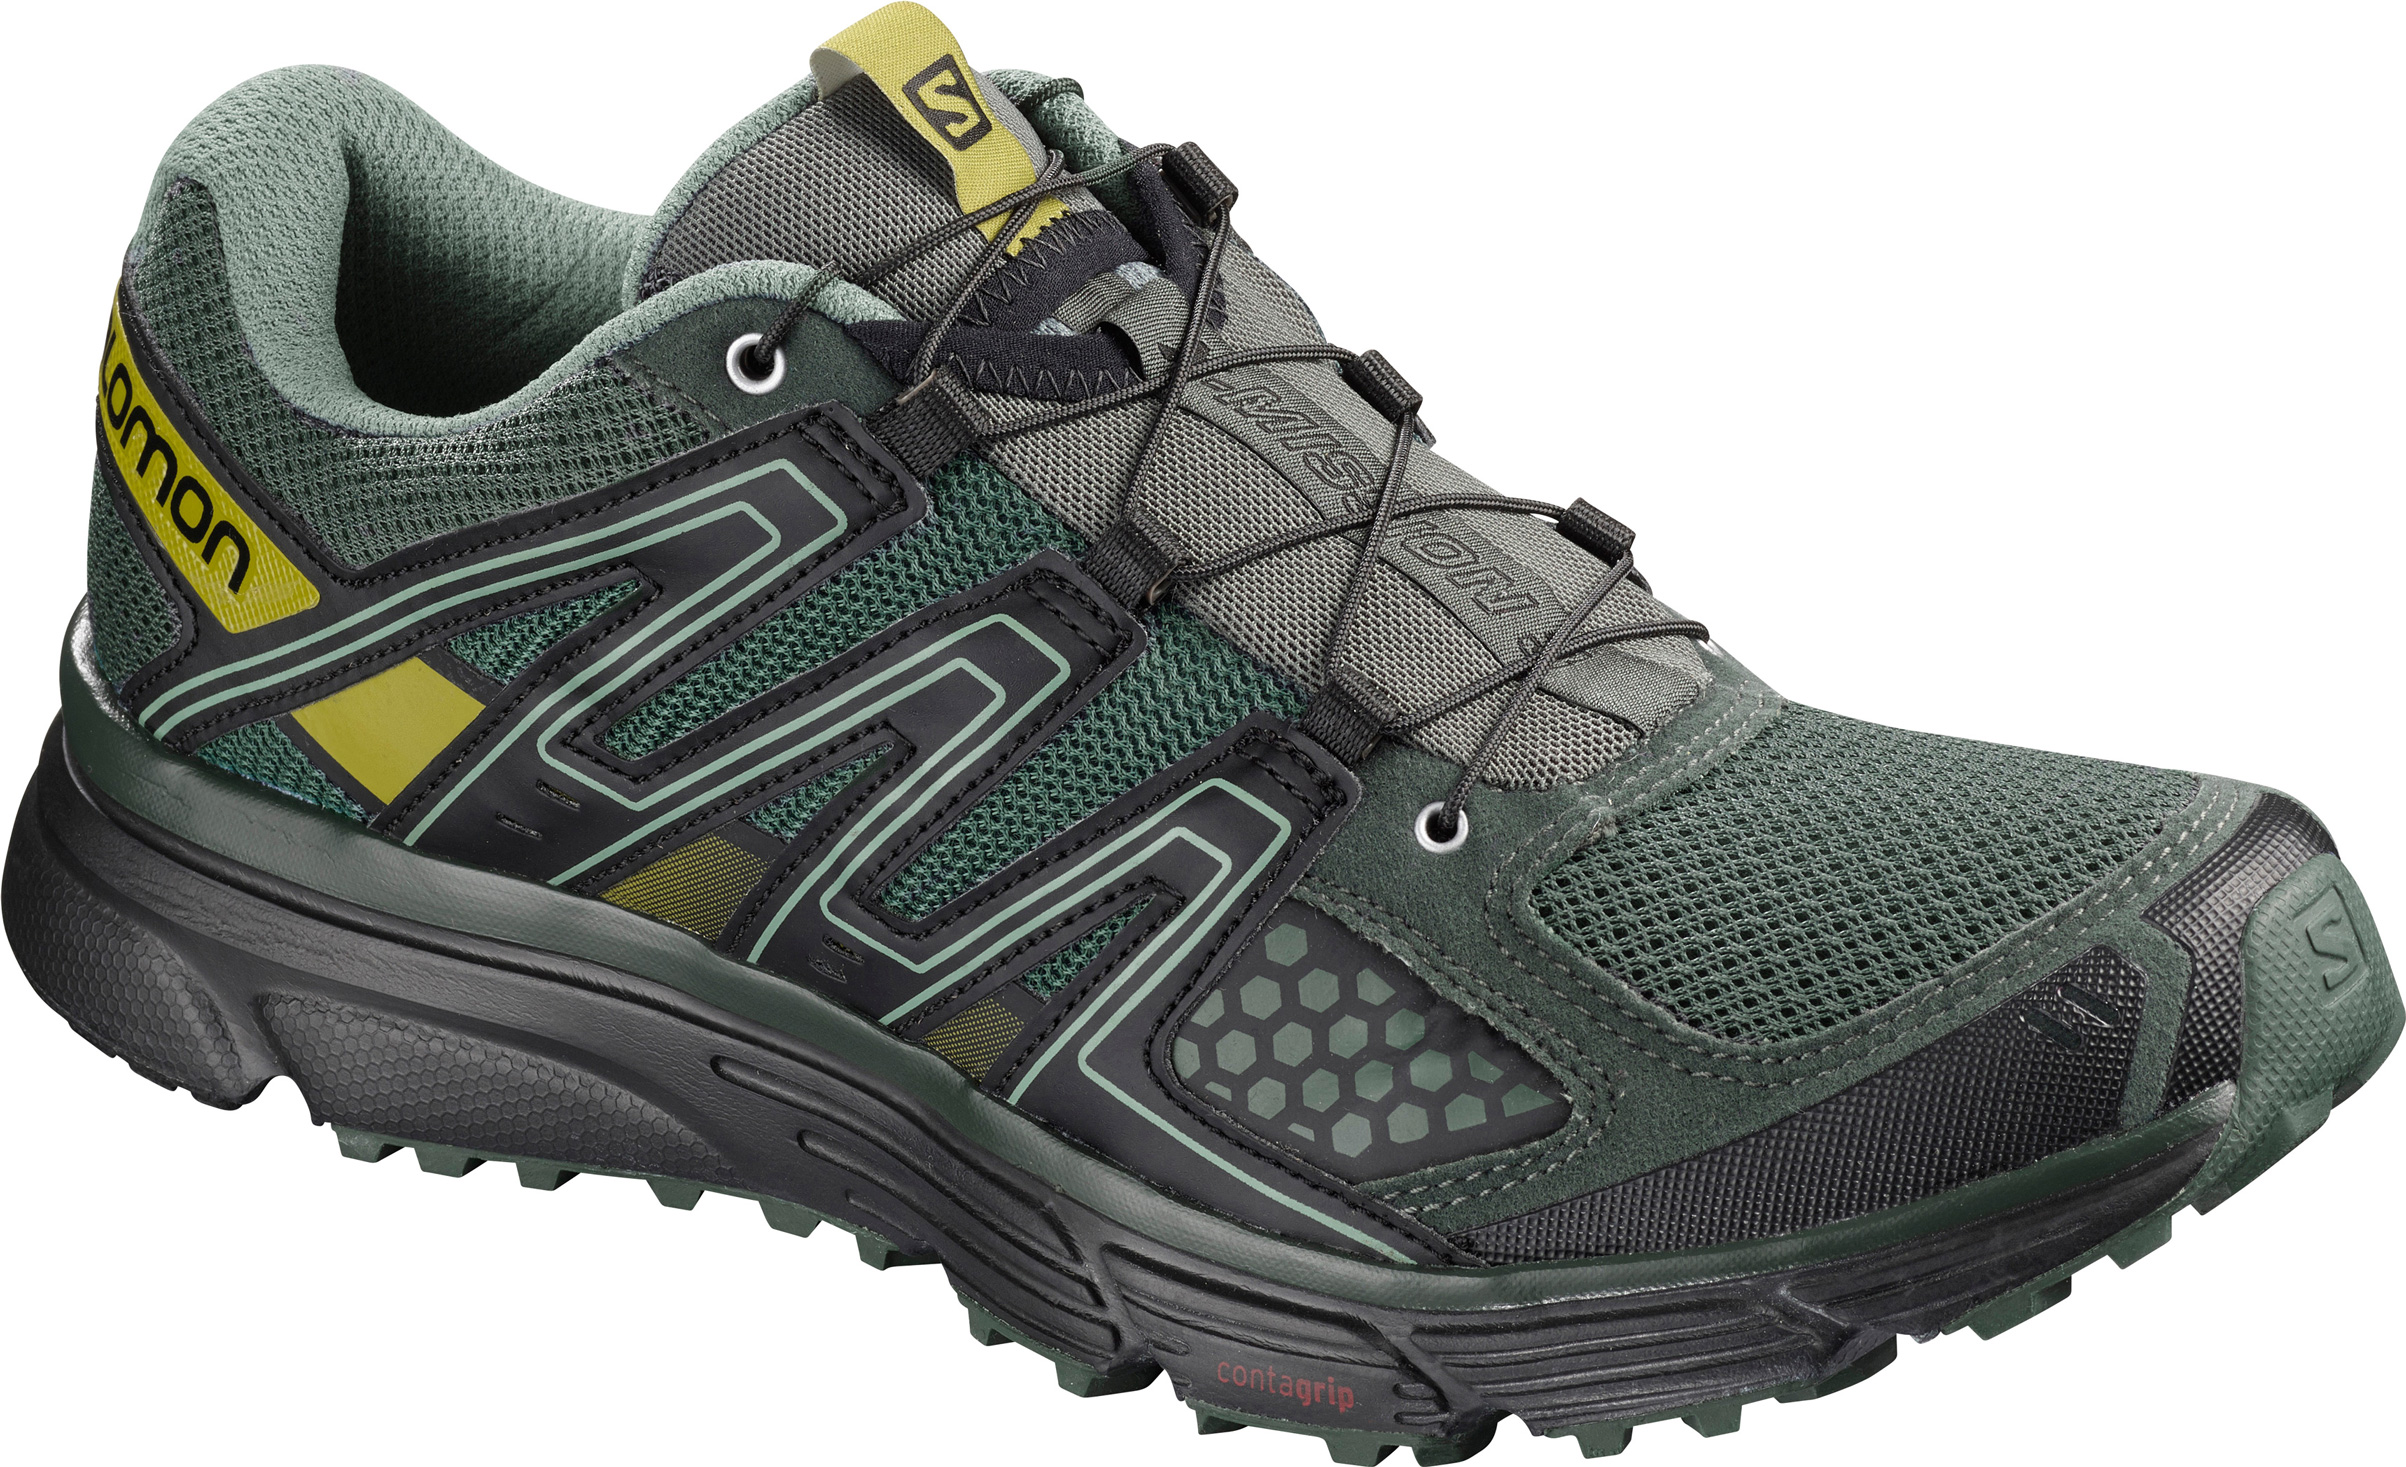 salomon x mission 2 mens trail running shoes review list